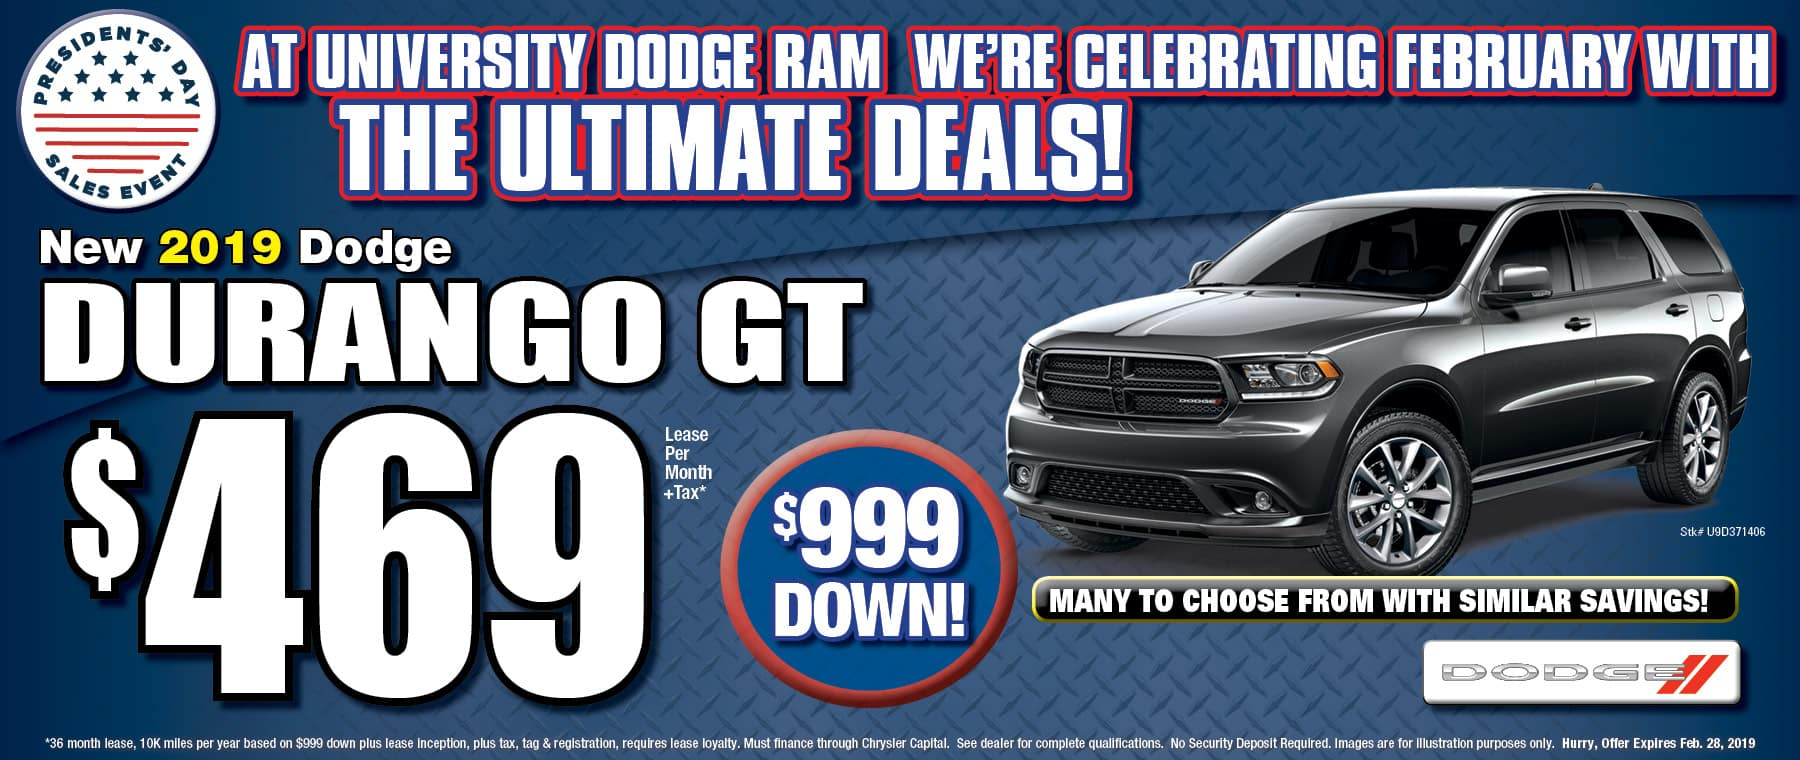 New 2019 Dodge Durango GT! - University Dodge RAM!